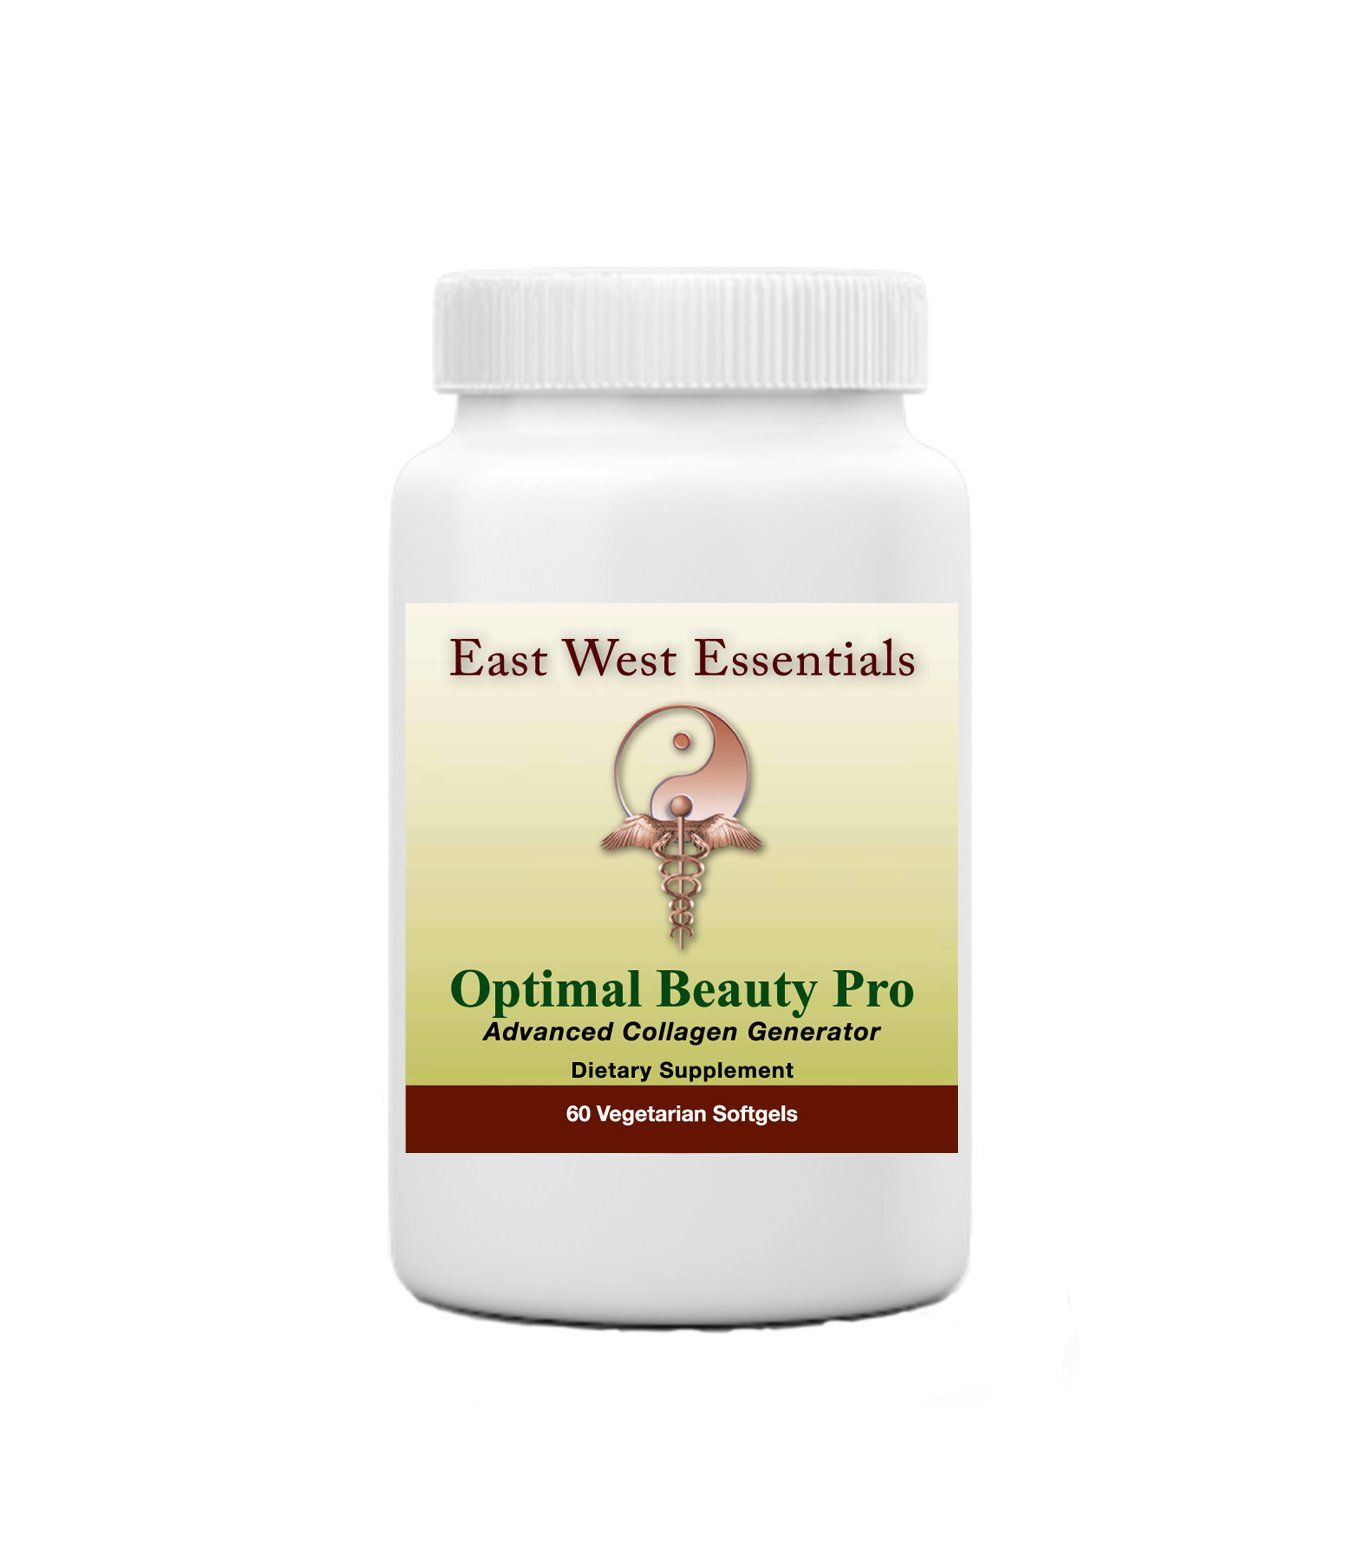 Optimal Beauty Pro - Dietary Supplement by East West Essentials - Promotes Thicker, Healthier Hair - Helps Build Collagen - Reduces Fine Lines & Wrinkles by East West Essentials